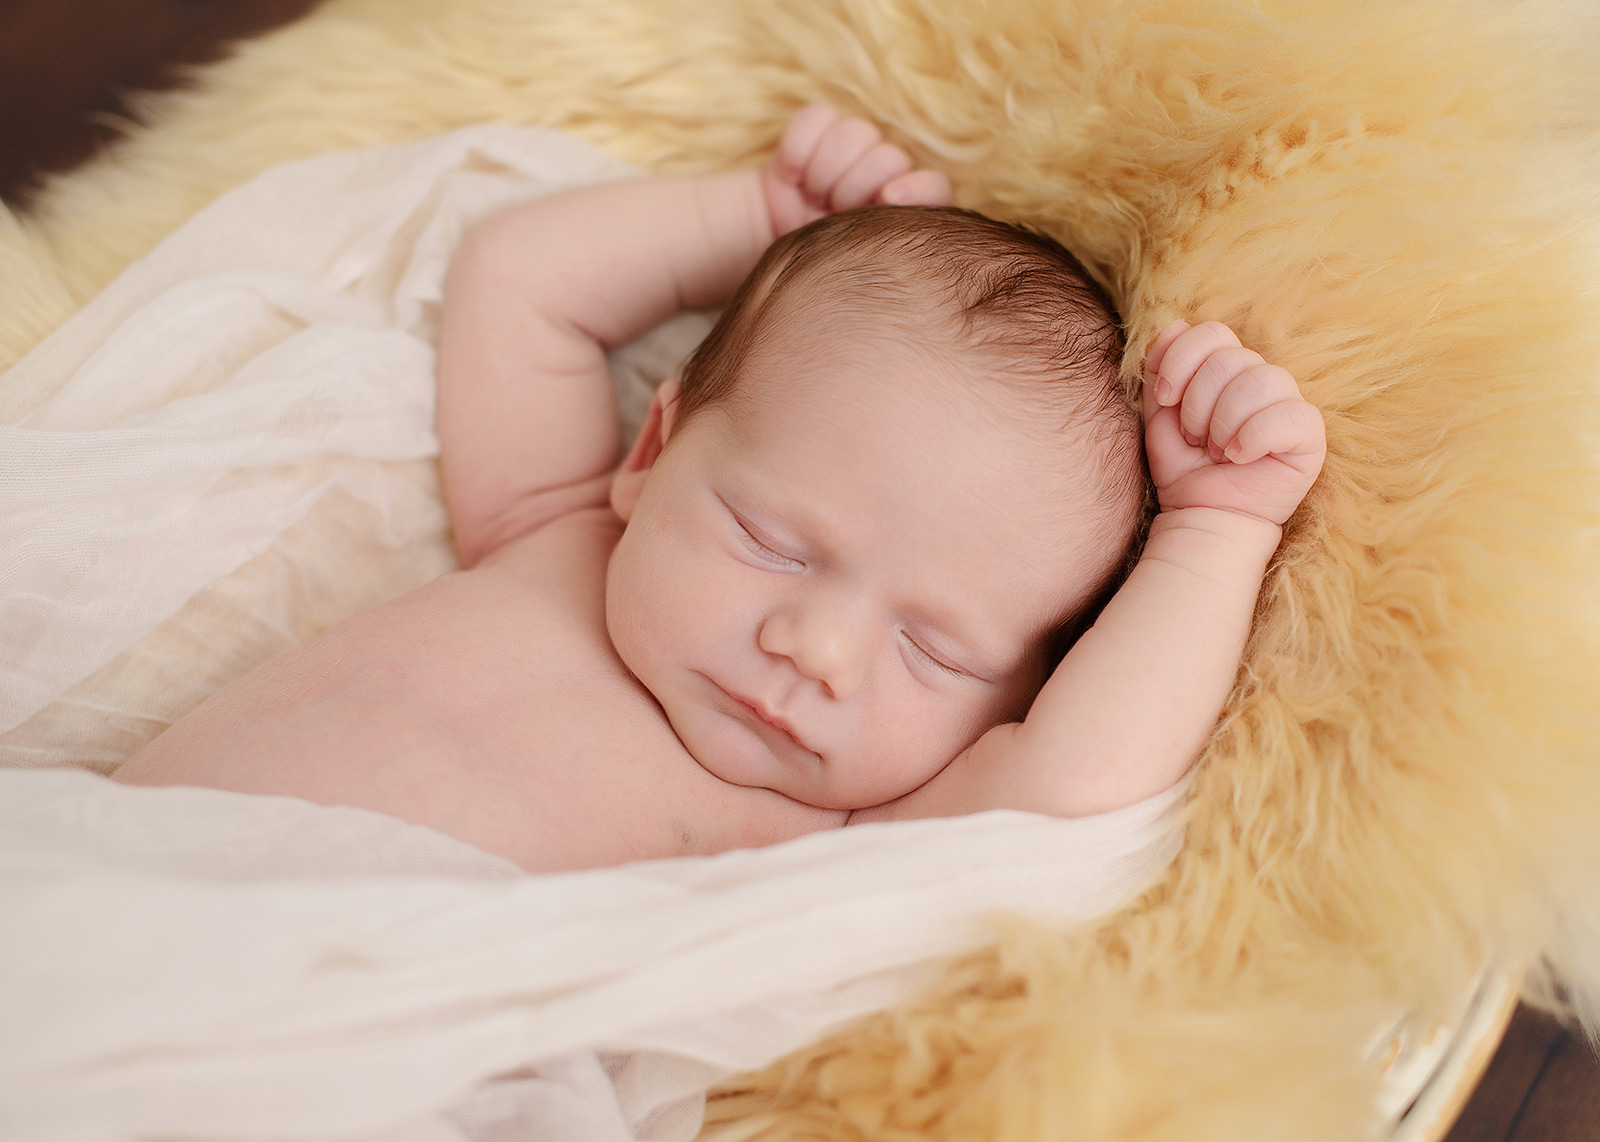 Newborn baby girl sleeping with arms up in muslin cloth and fur throw